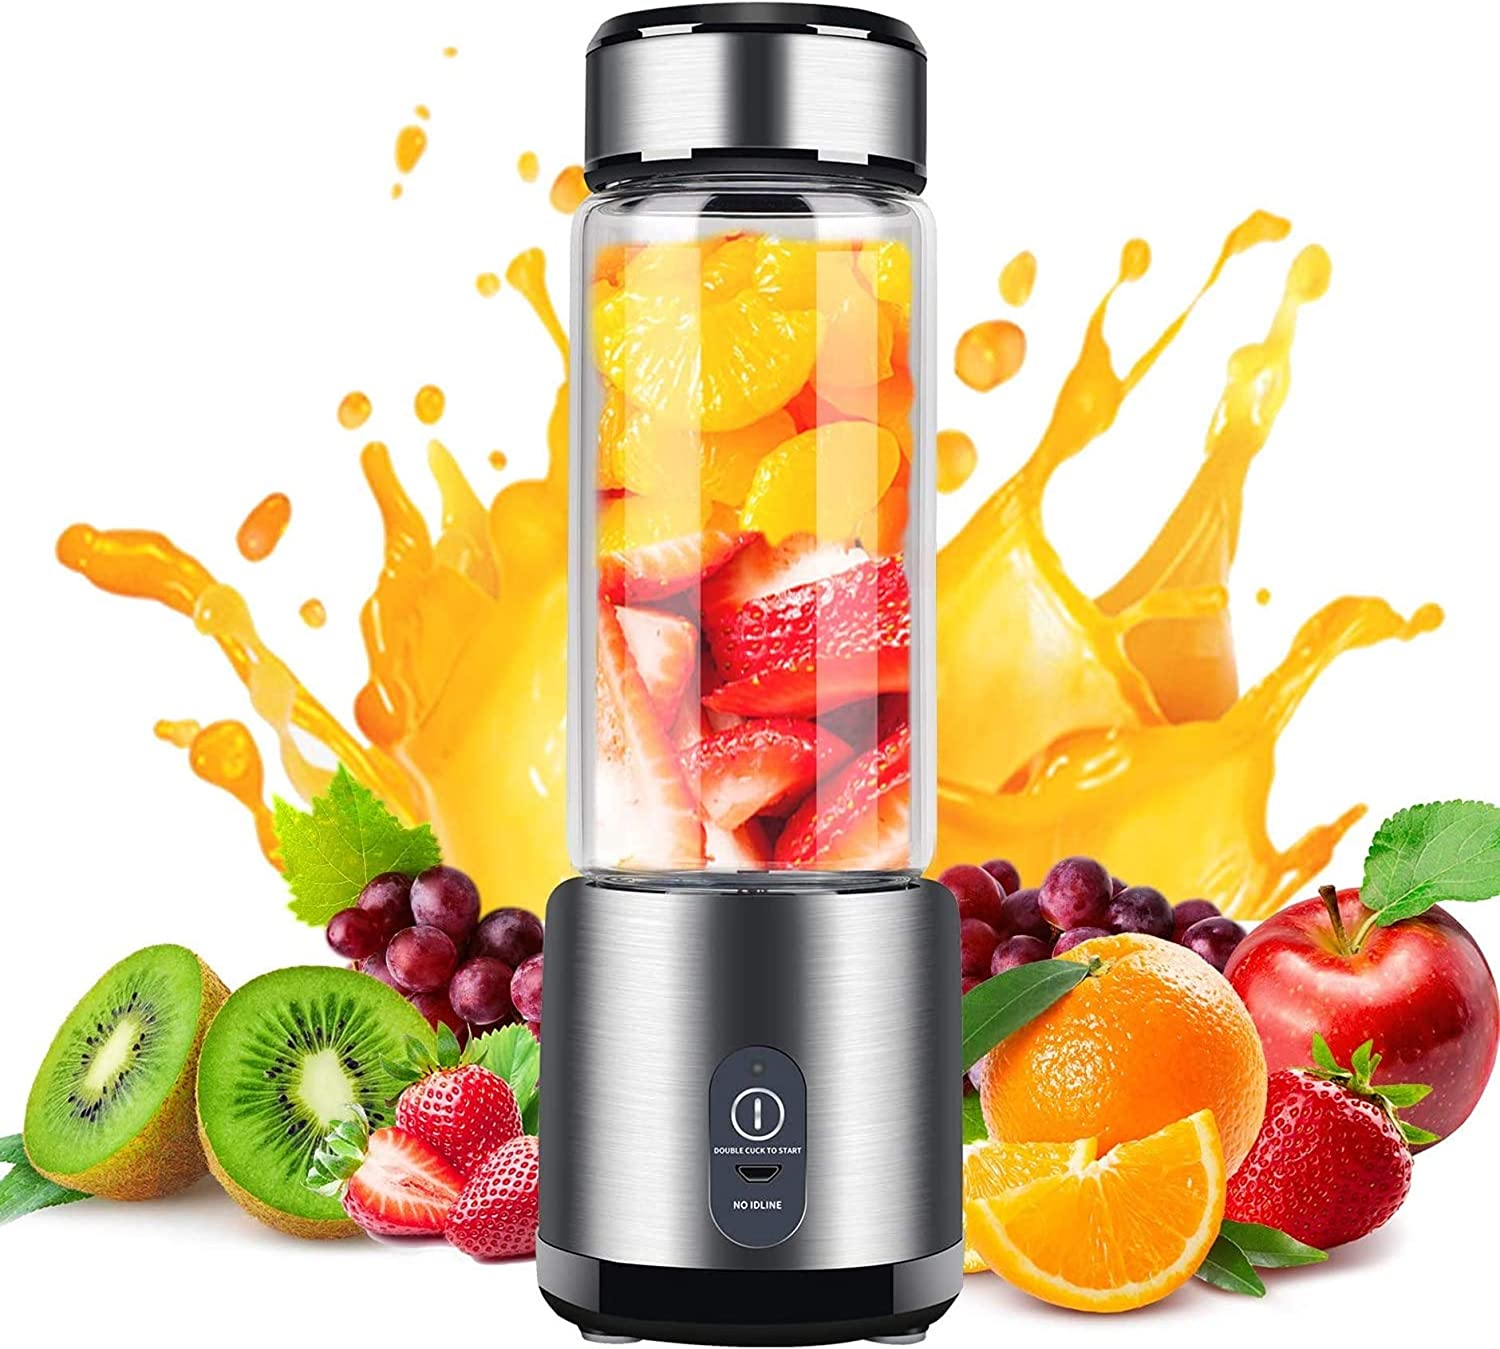 Portable Blender, Stainless Steel and Glass Body, Electric Juicer Cup Personal Size with USB Rechargeable, Mini Juice Mixer for Shakes Smoothies Home Outdoor